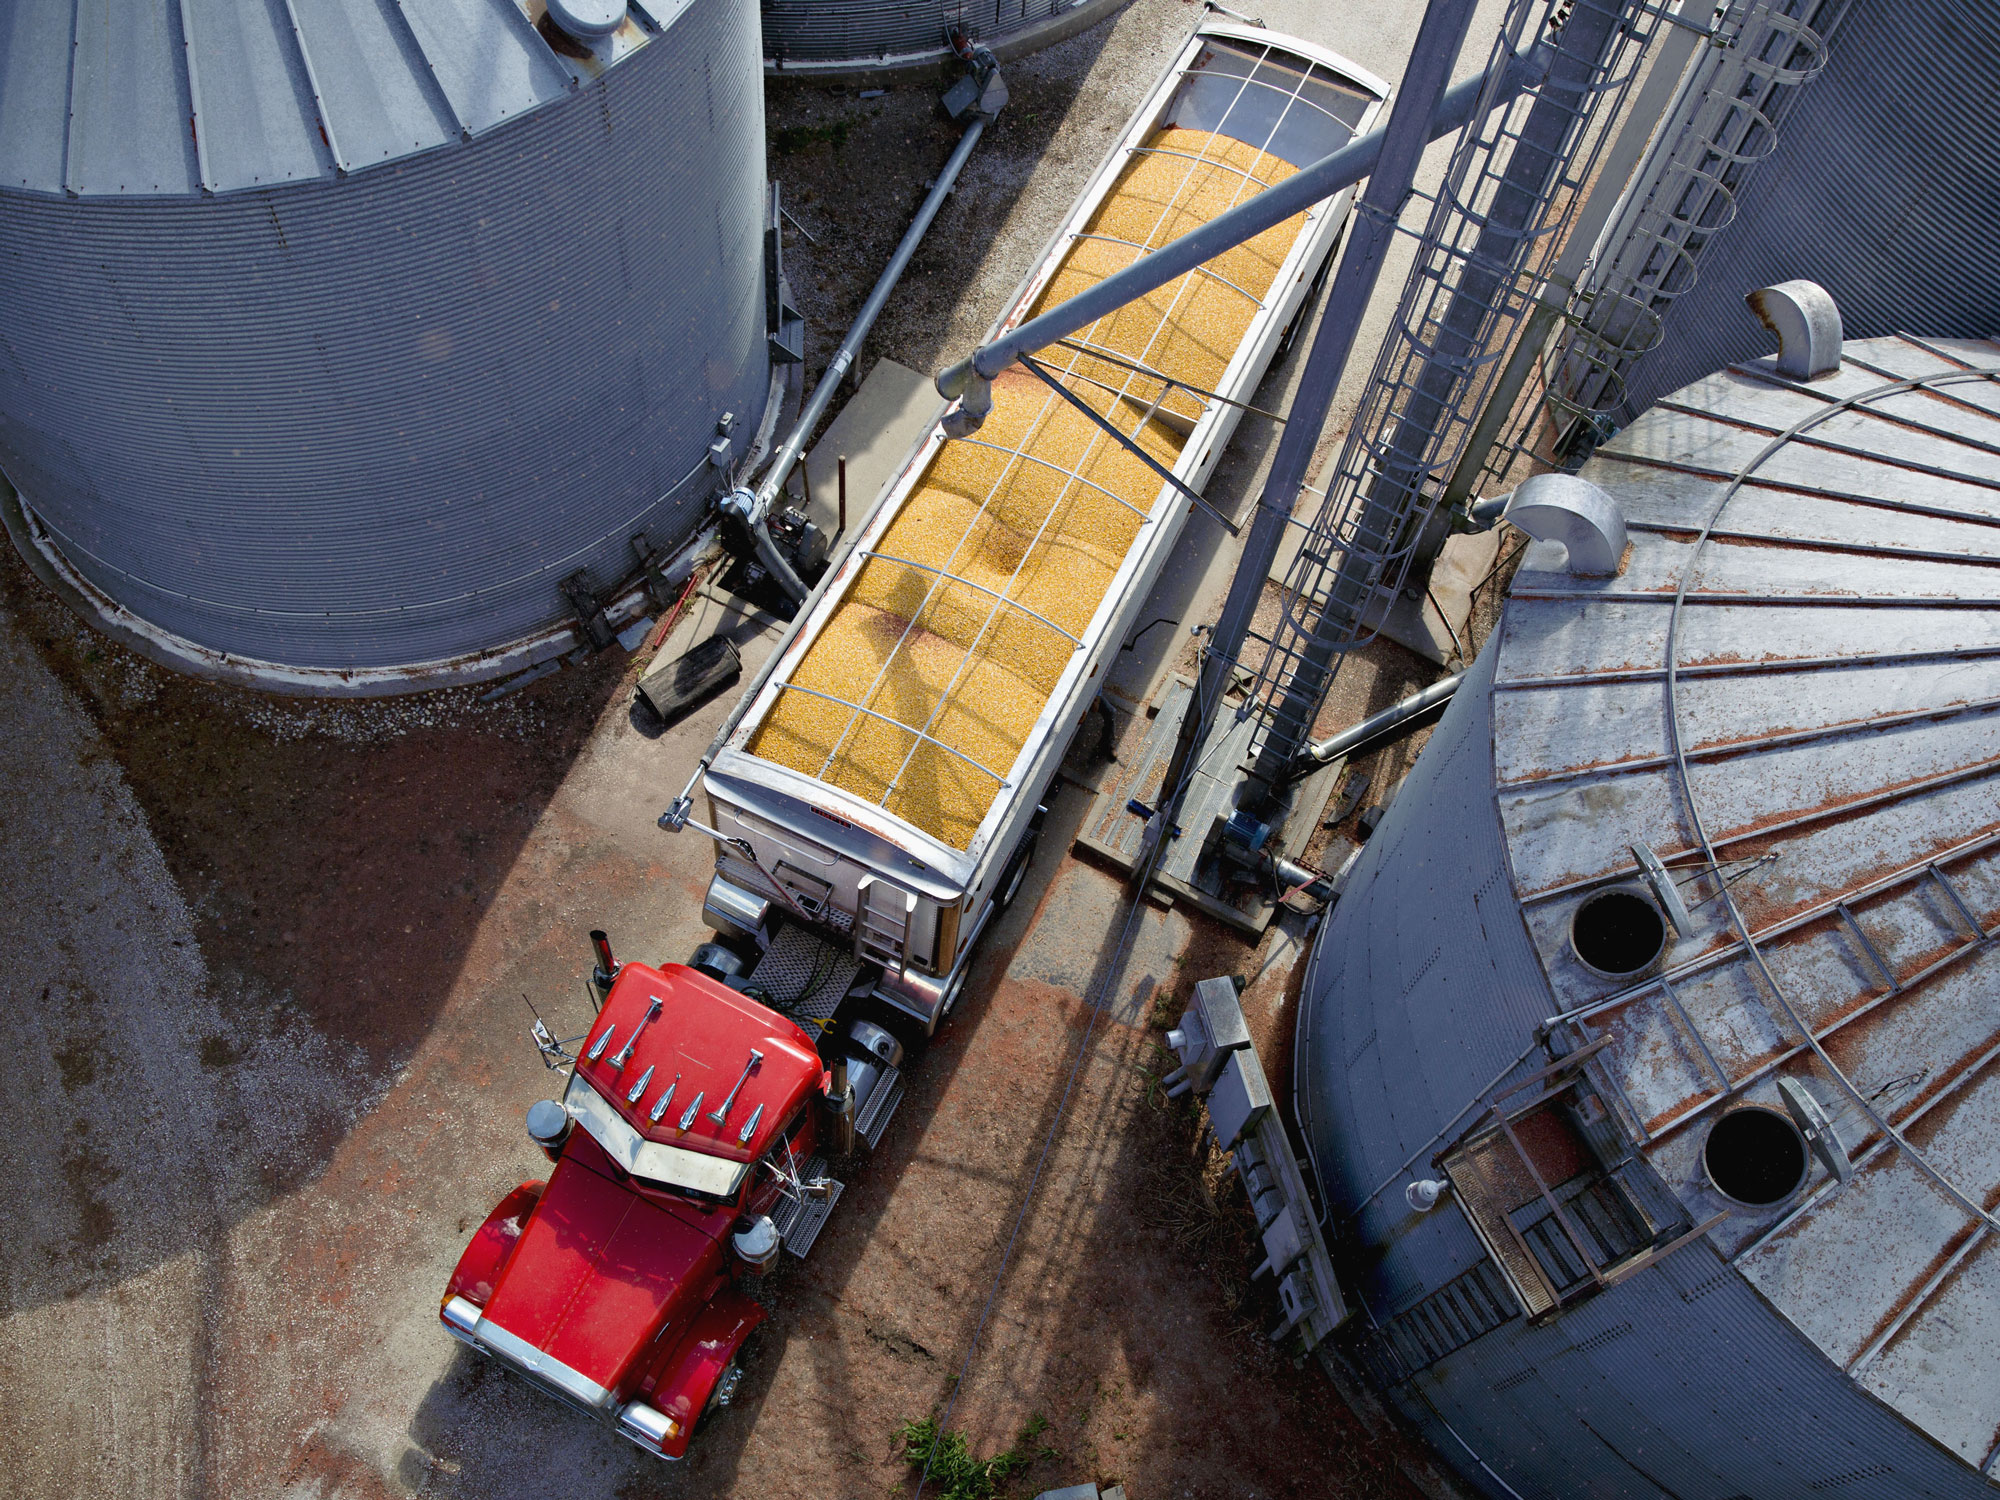 A truck hauls a load of corn between grain bins on a farm during harvest in Walnut, Illinois.